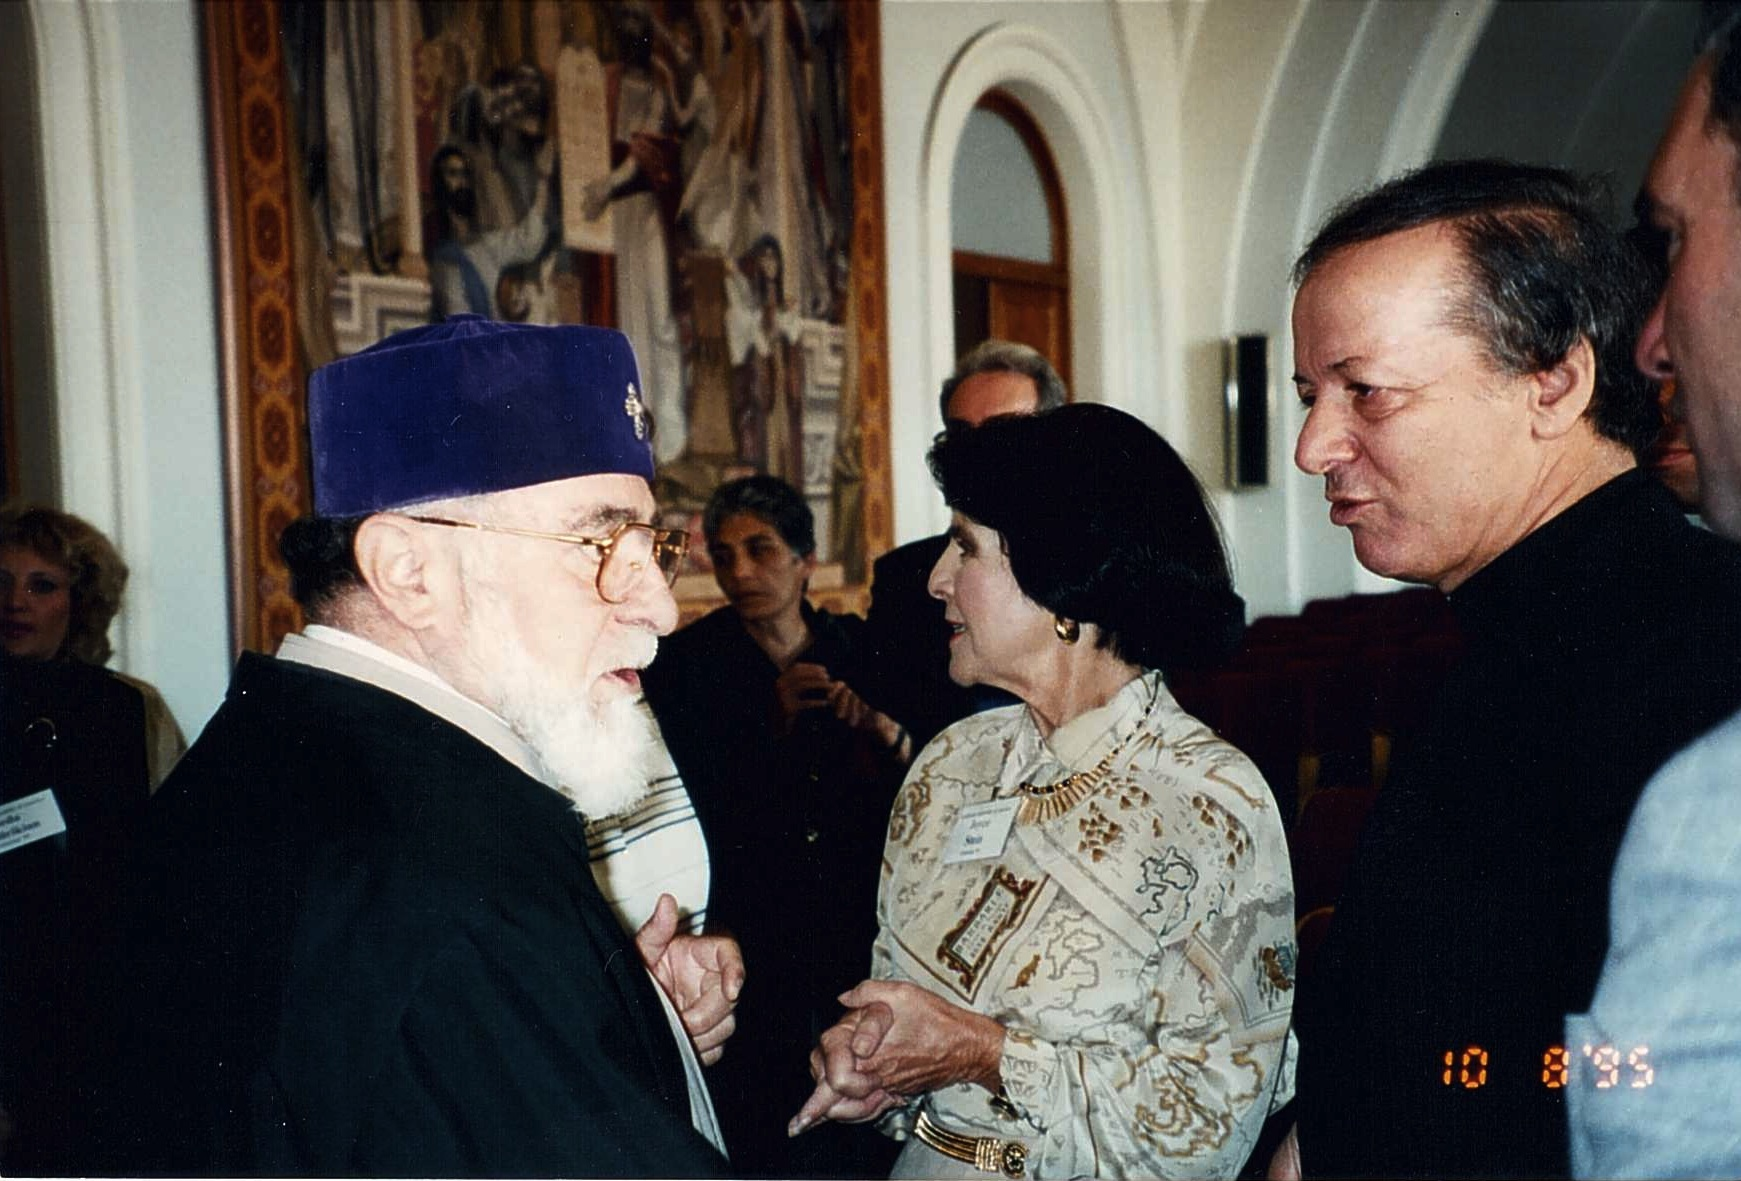 His Holiness Karekin the first with Benefactor Joyce Stein.jpg